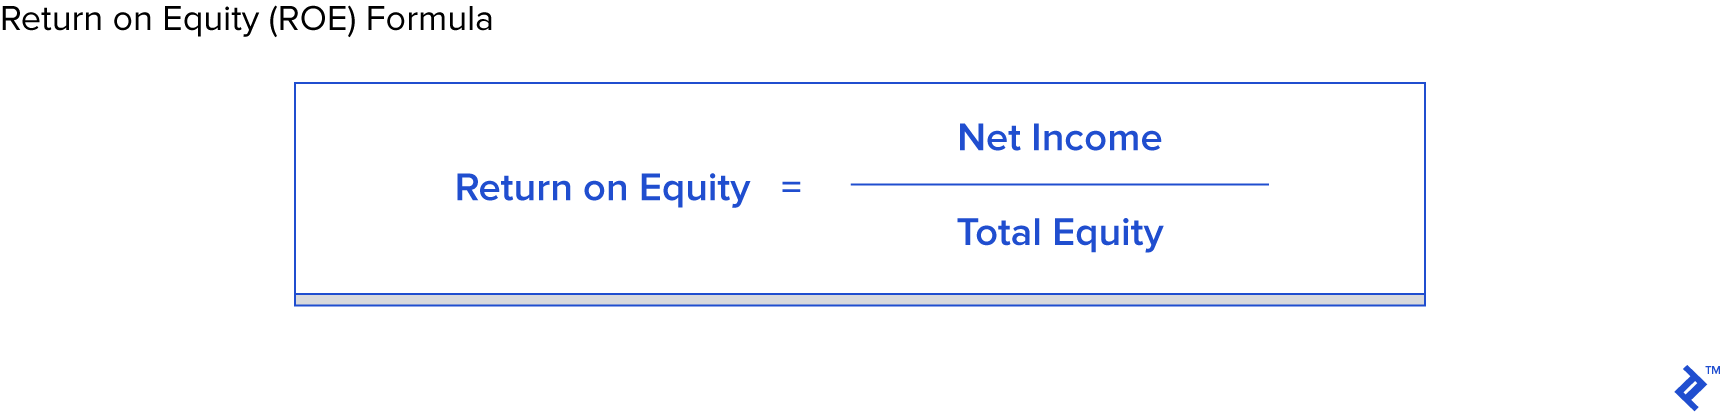 Return on equity ROE formula